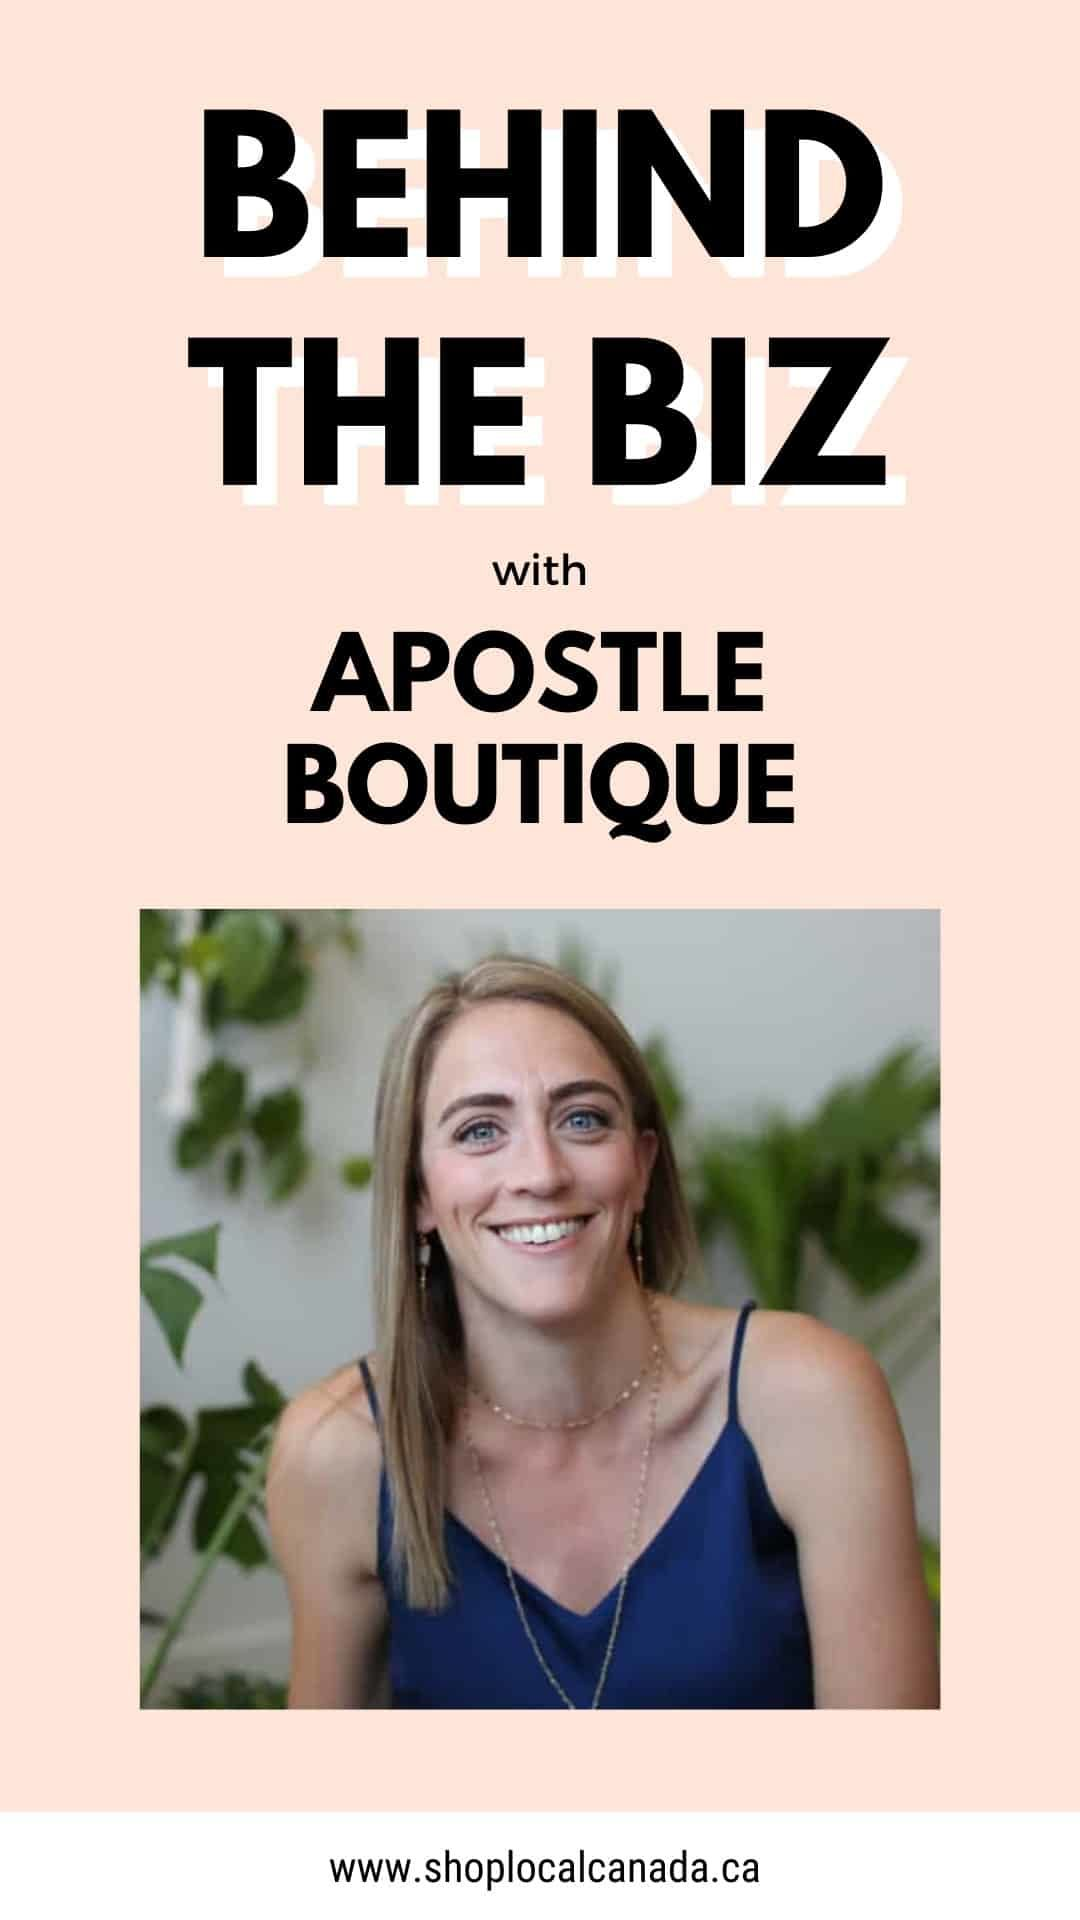 Behind The Biz with Apostle Boutique